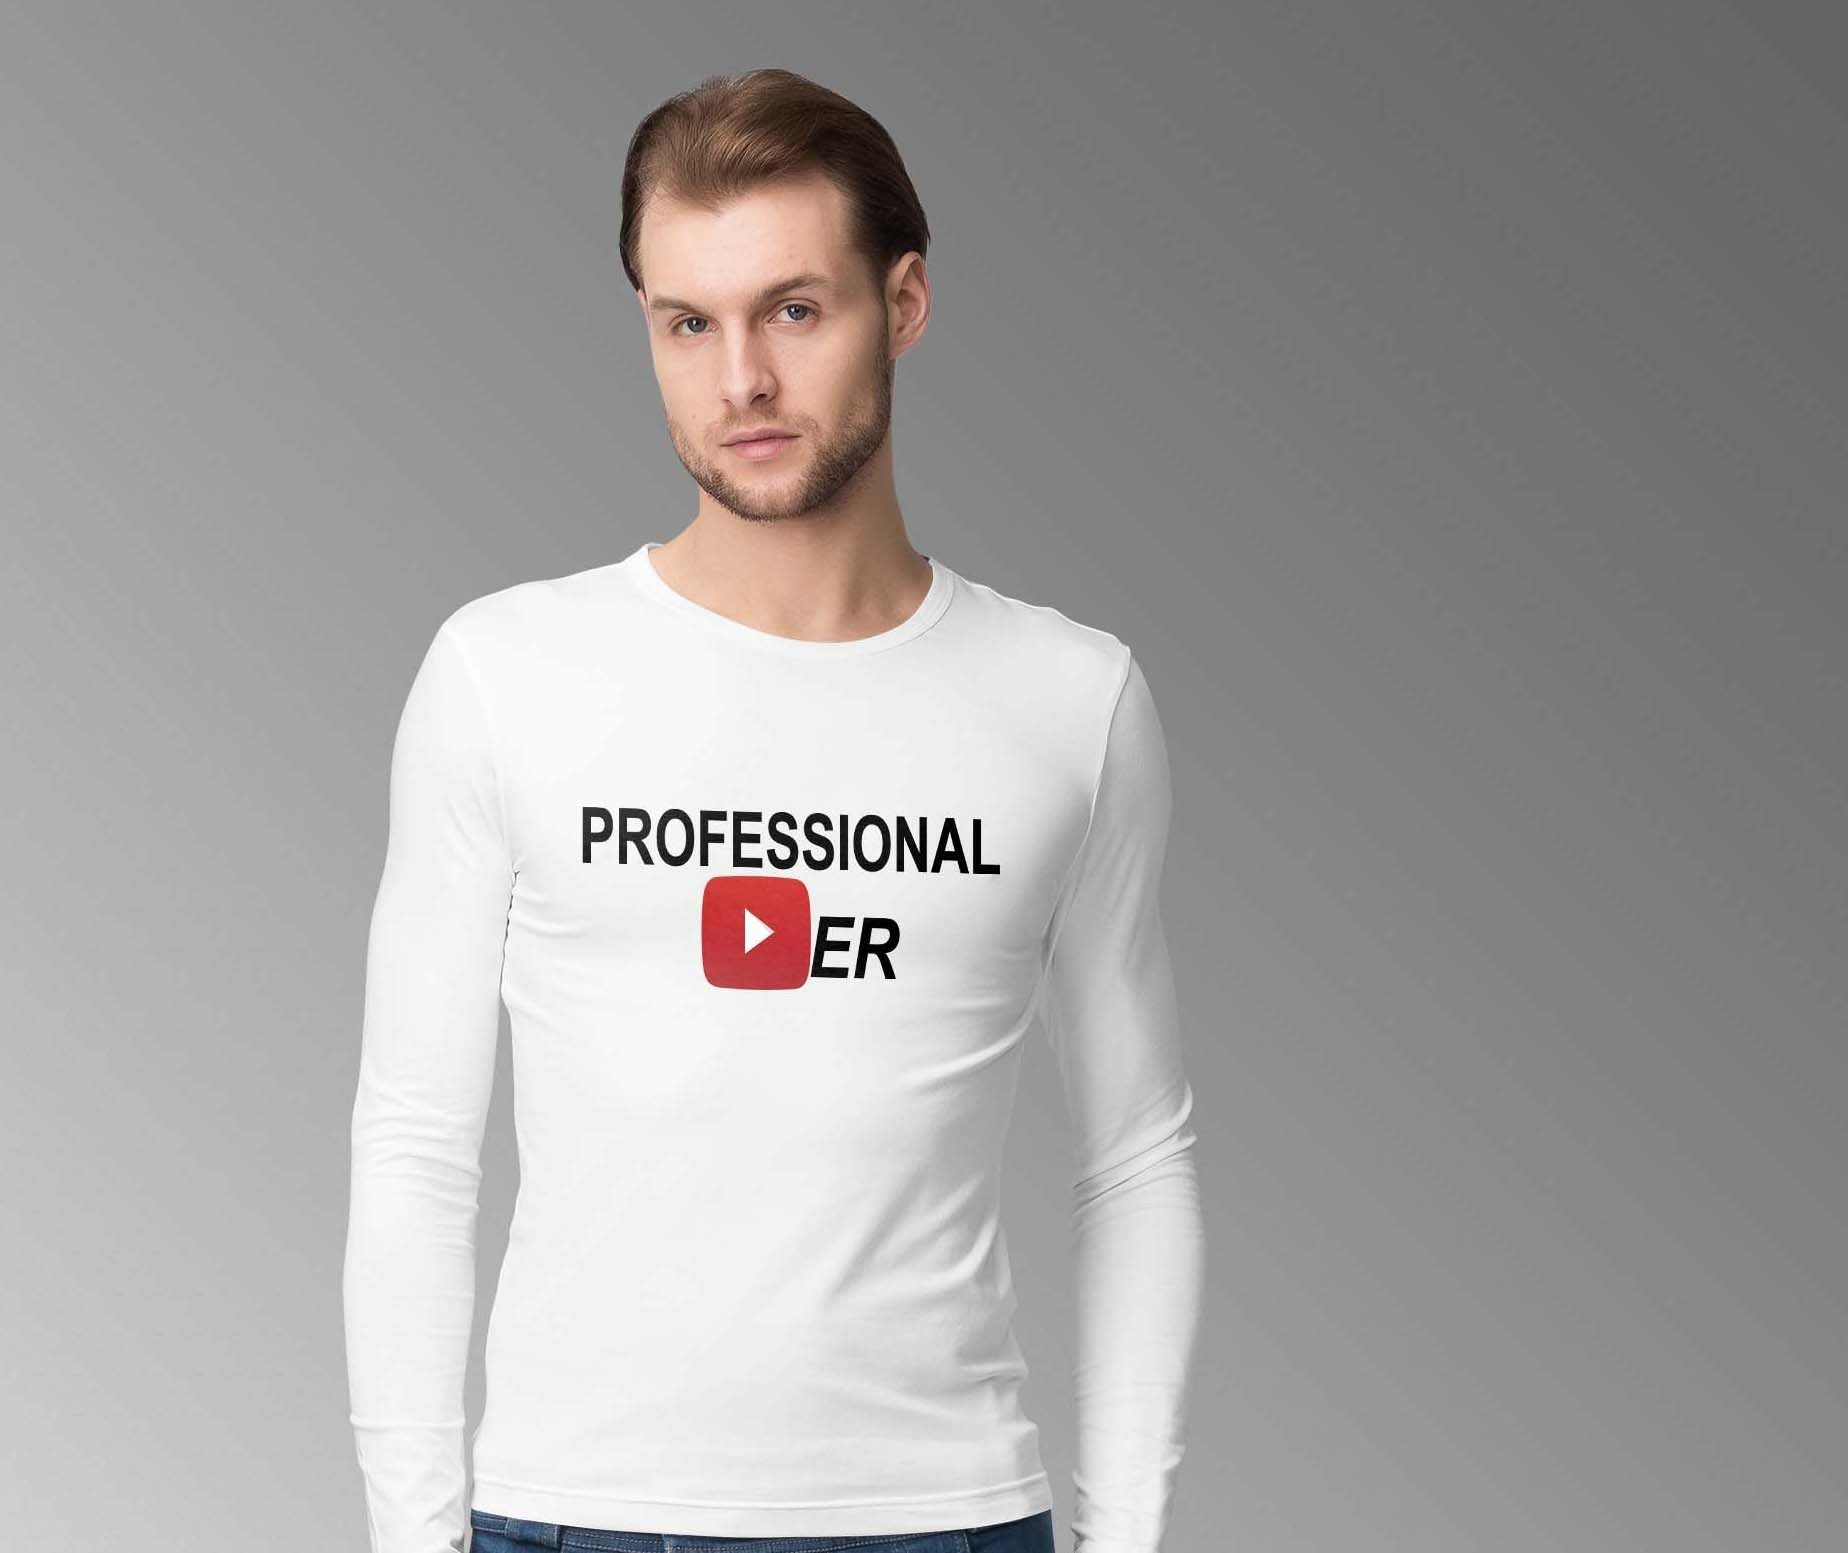 PROFESSIONAL YOUTUBER - FULL SLEEVE T-SHIRT  ©